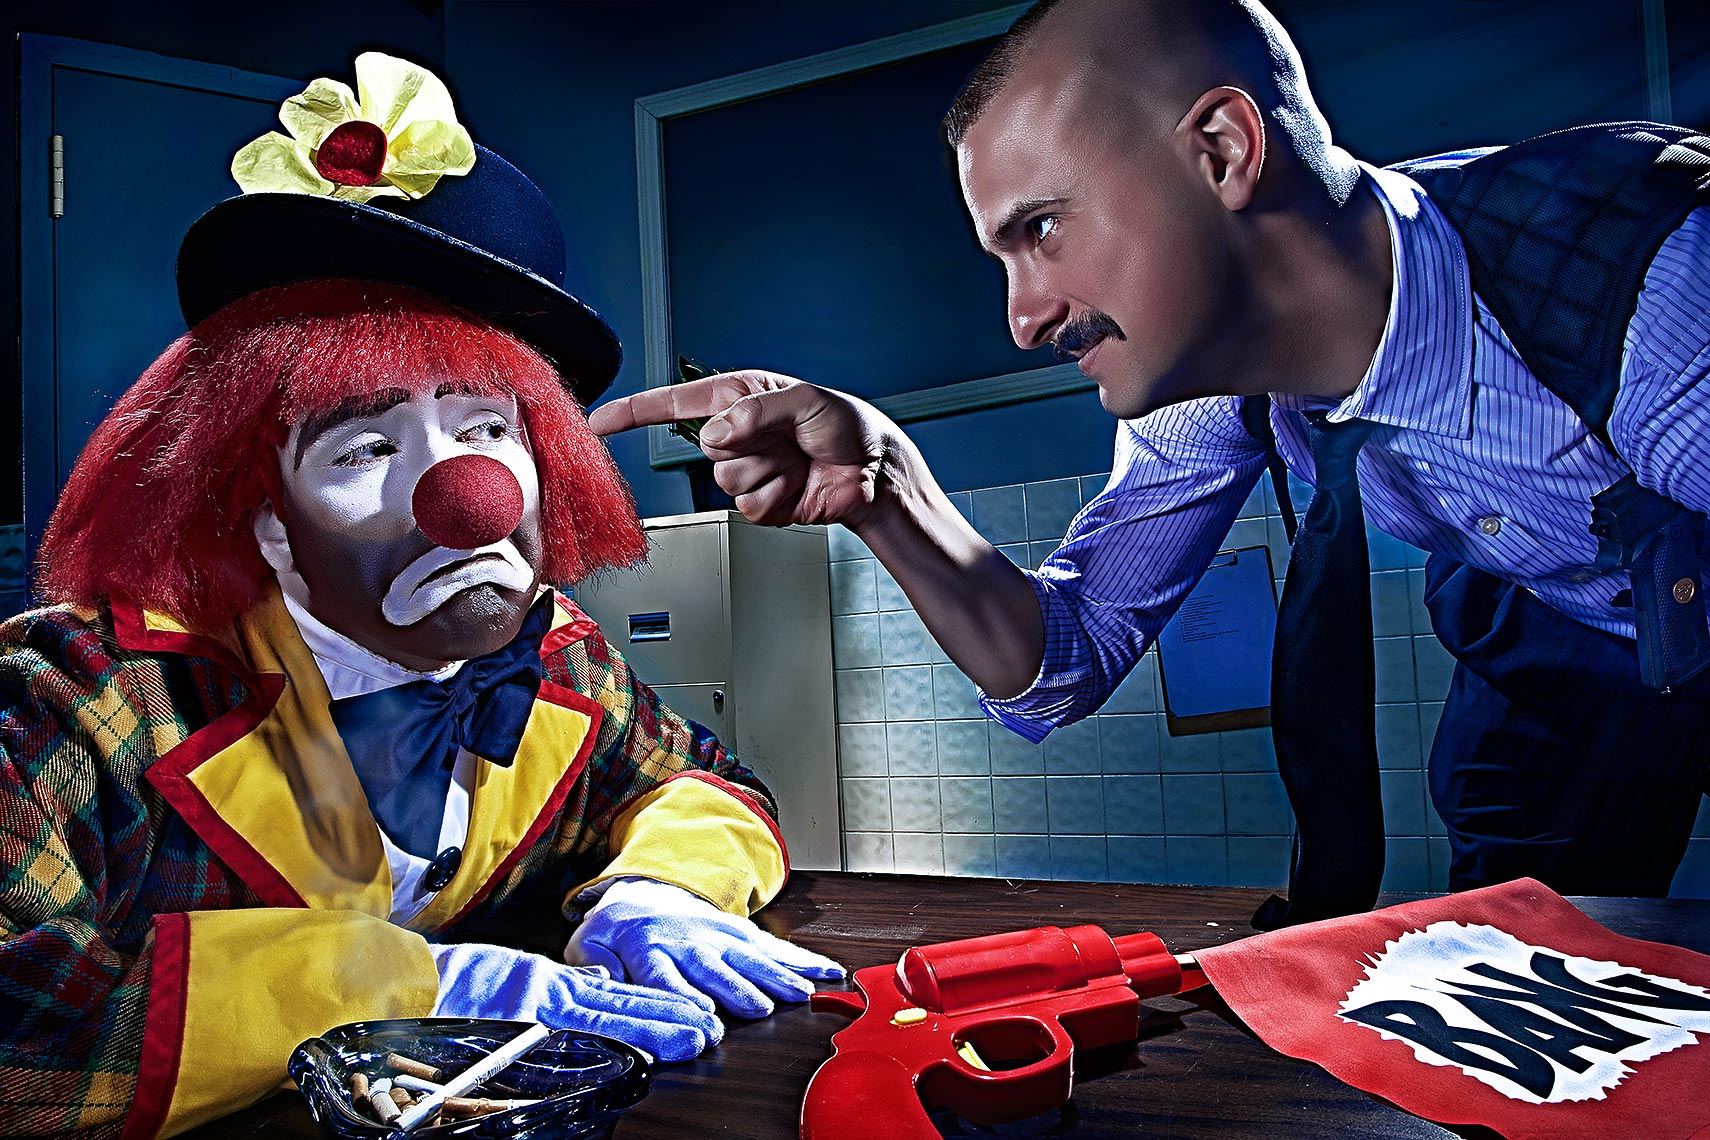 conceptual image of a clown interrogation by Brian kaldorf